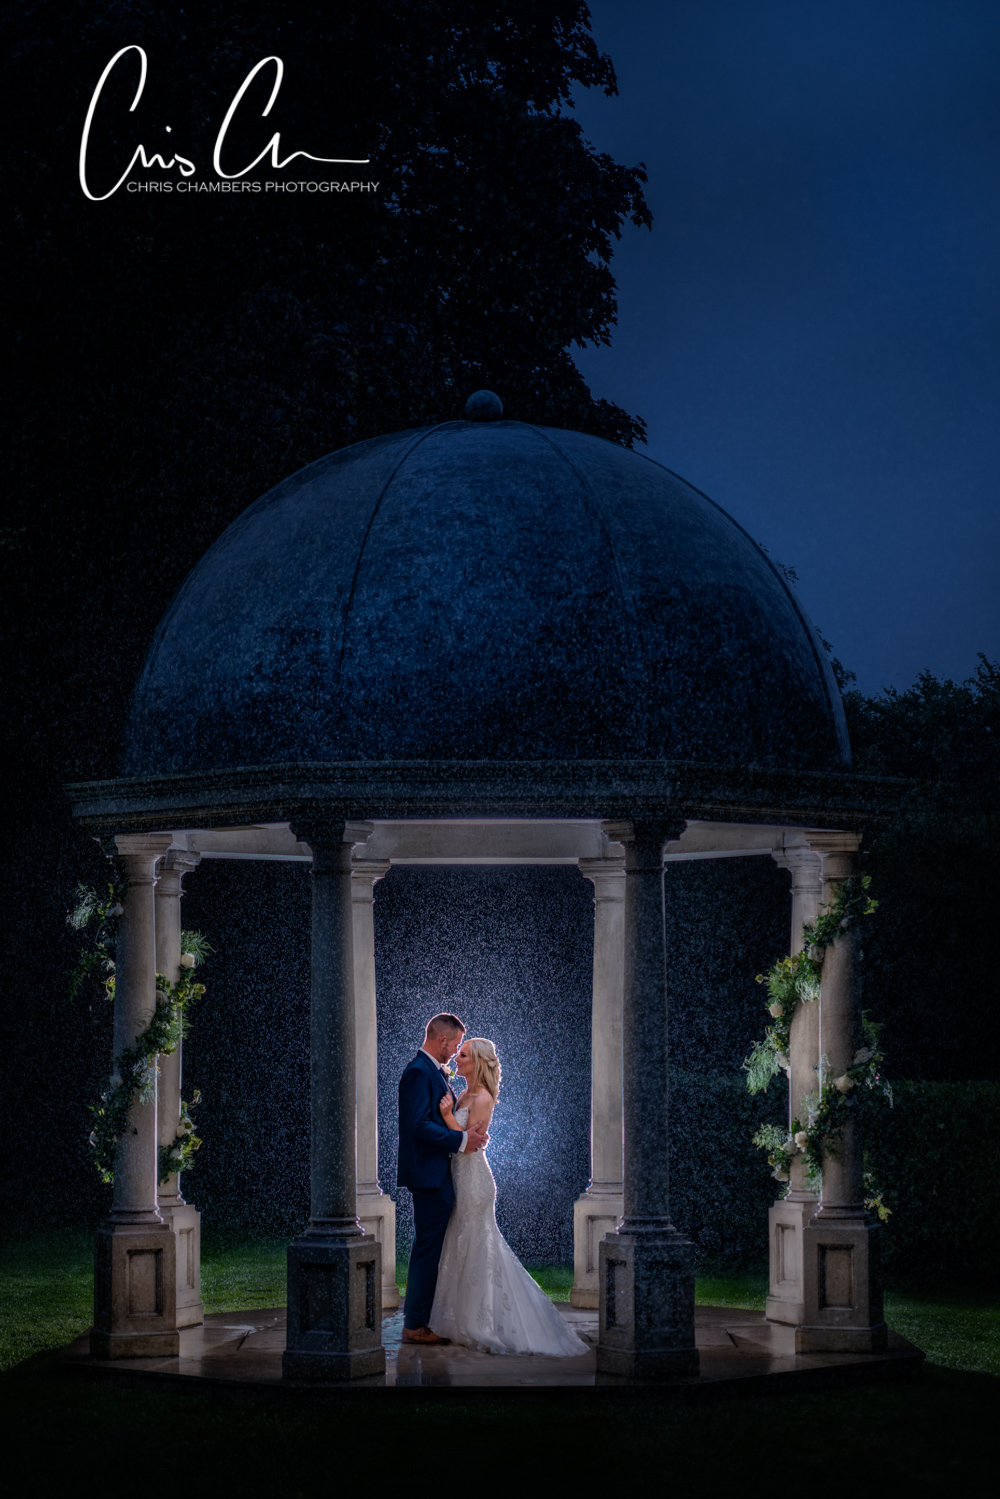 Wentbridge House Yorkshire wedding venue. Bride and groom photographed by Chris Chambers. Award winning west Yorkshire photographer